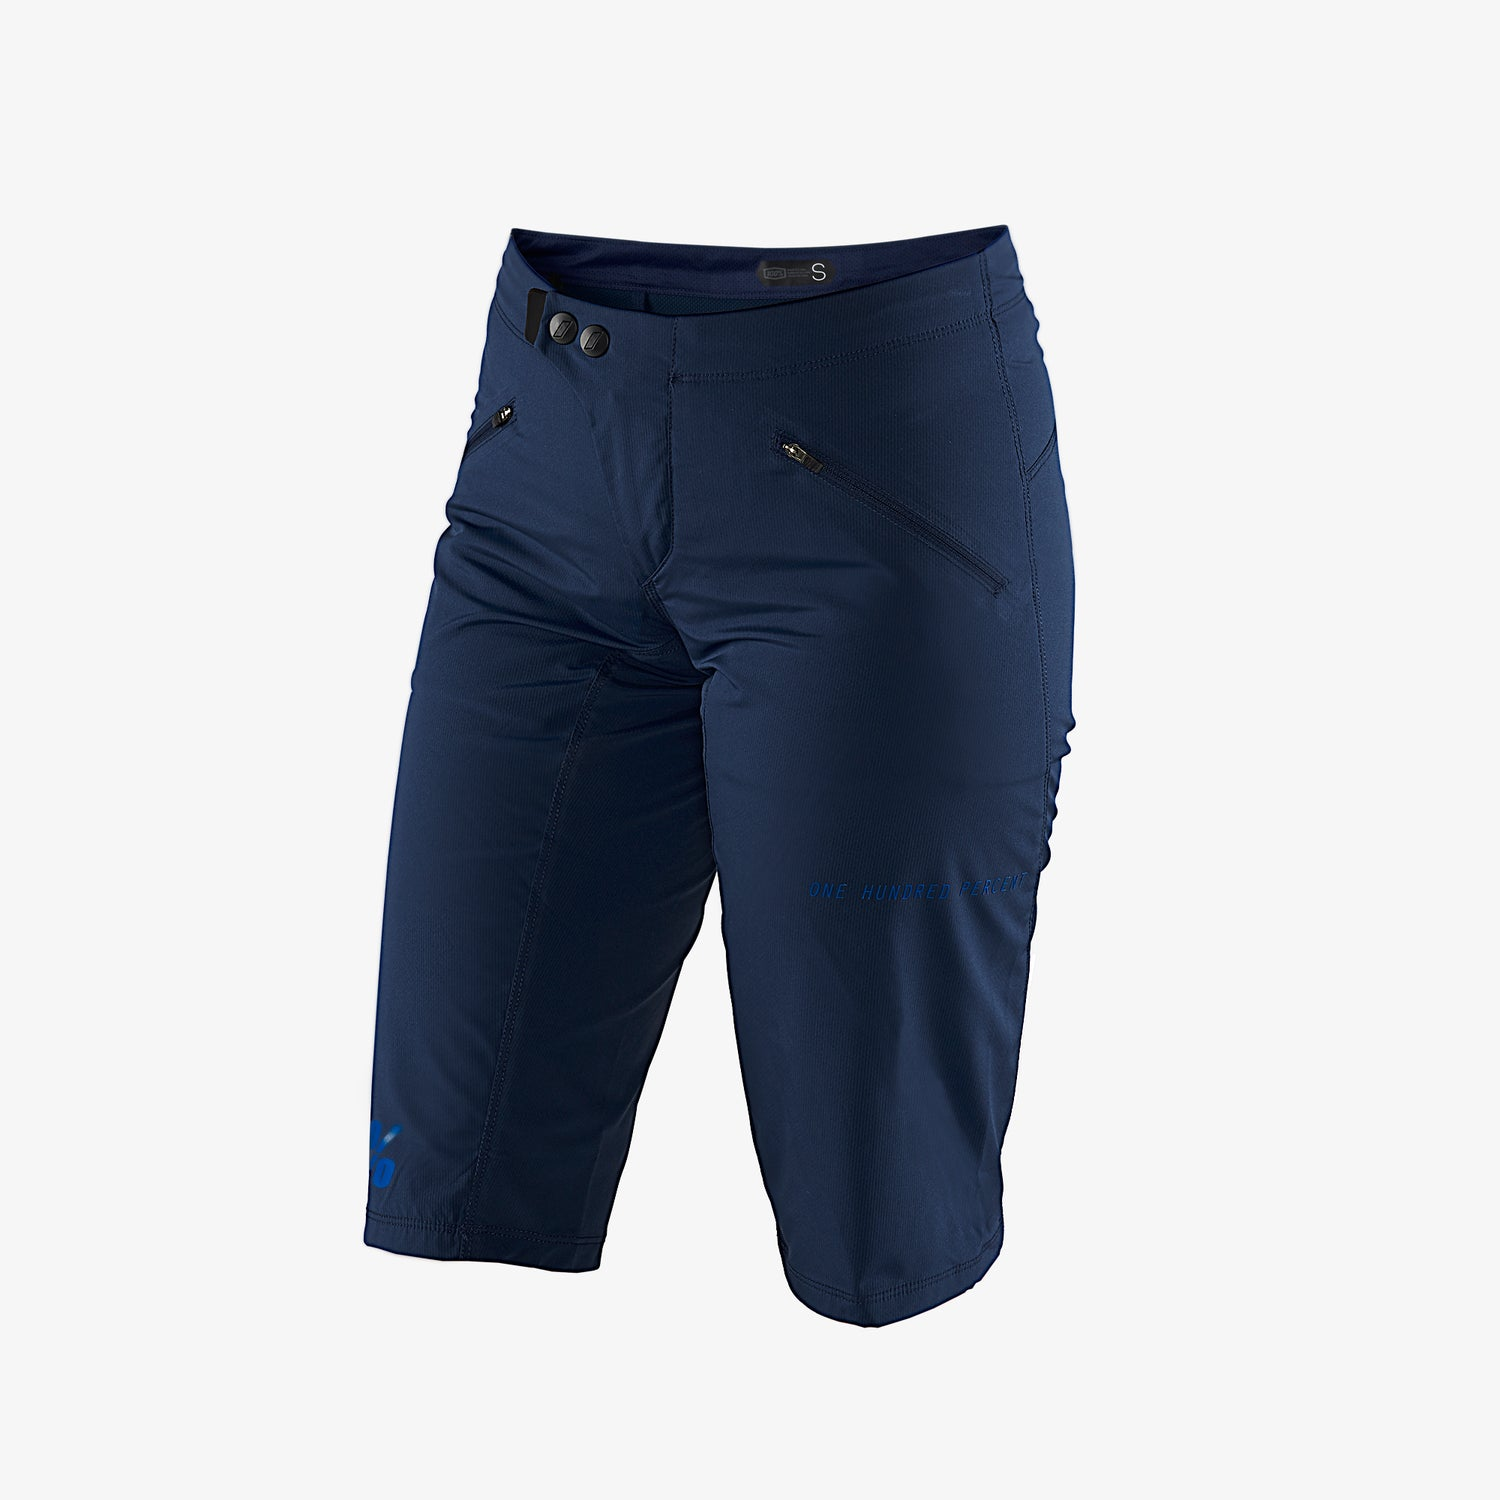 RIDECAMP Shorts - Women's - Navy